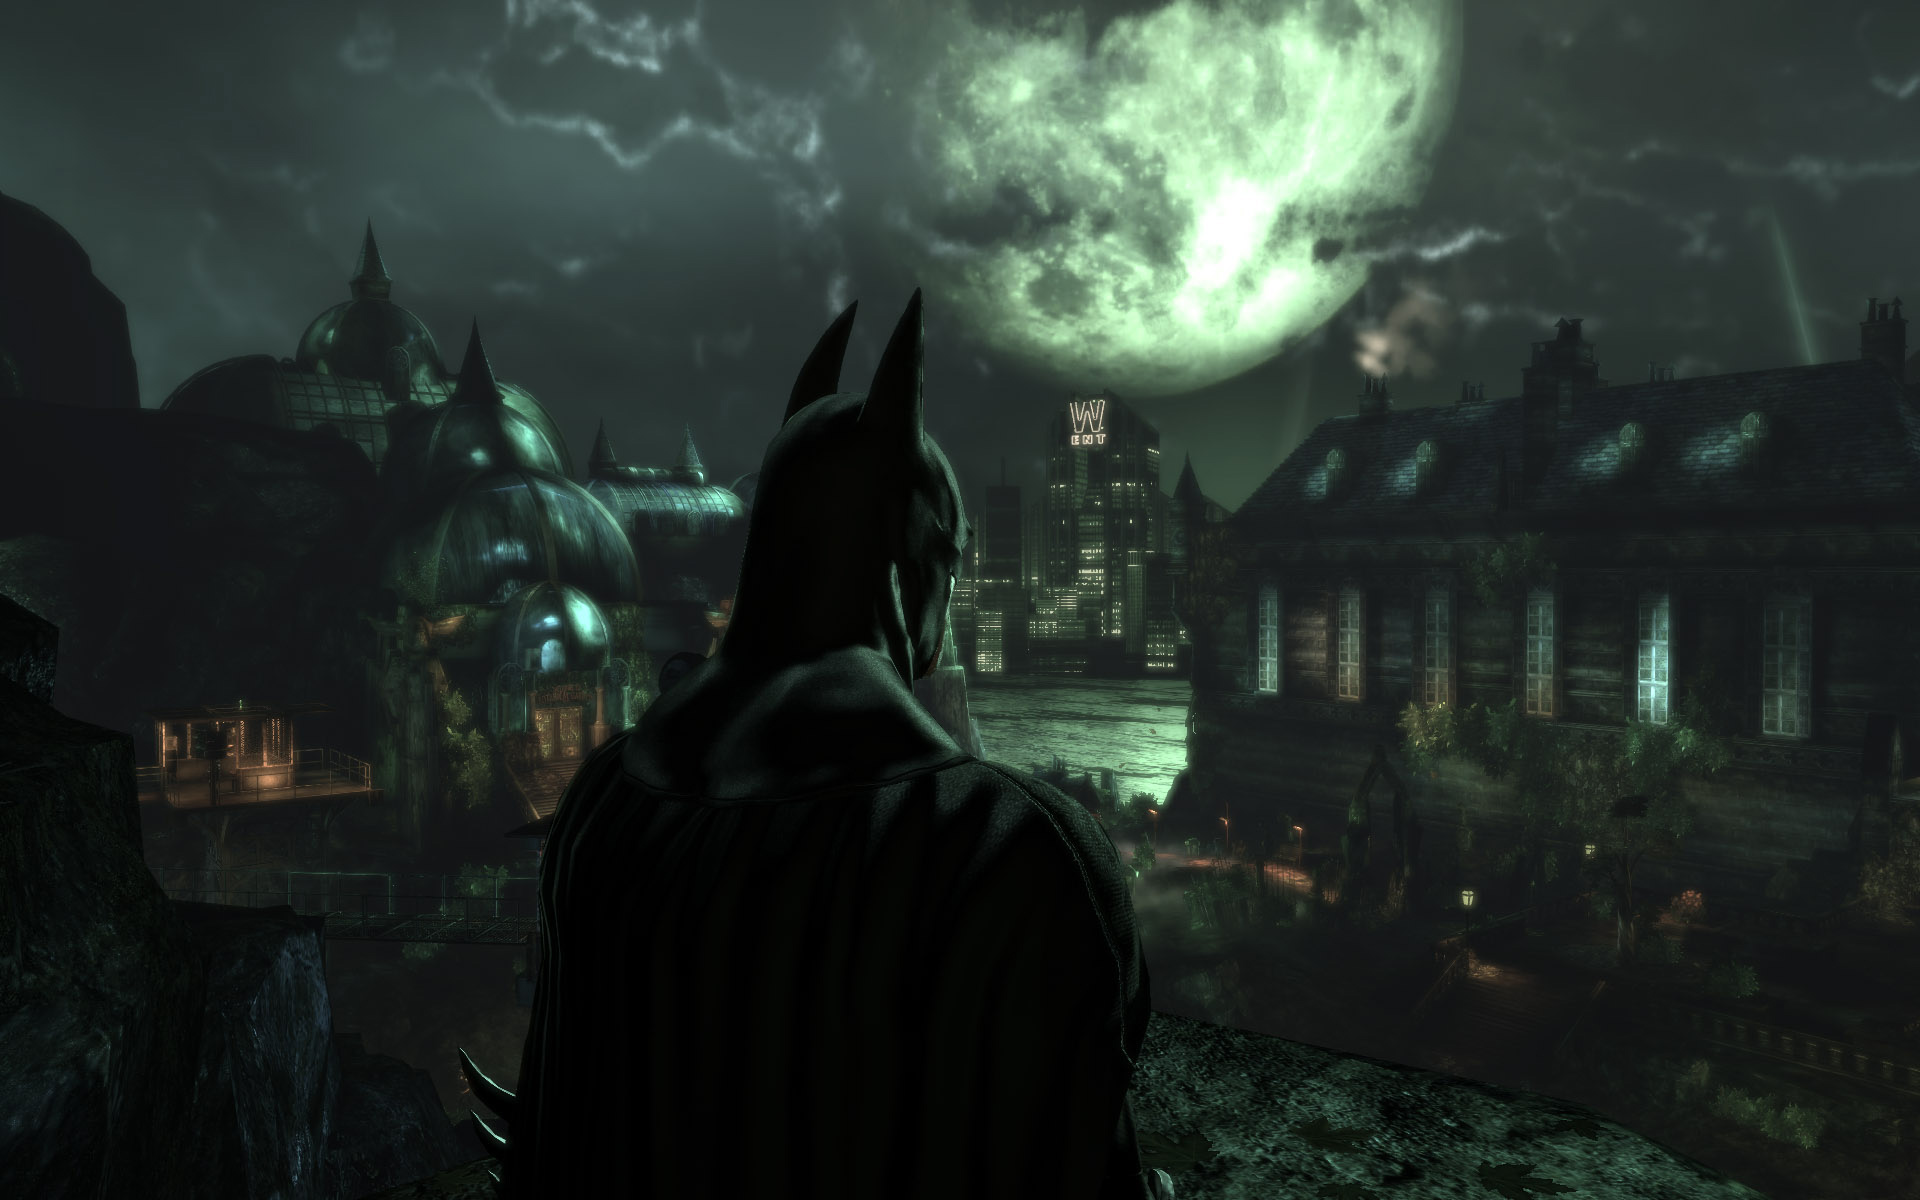 Batman Arkham Asylum Wallpaper in 1920x1200 1920x1200